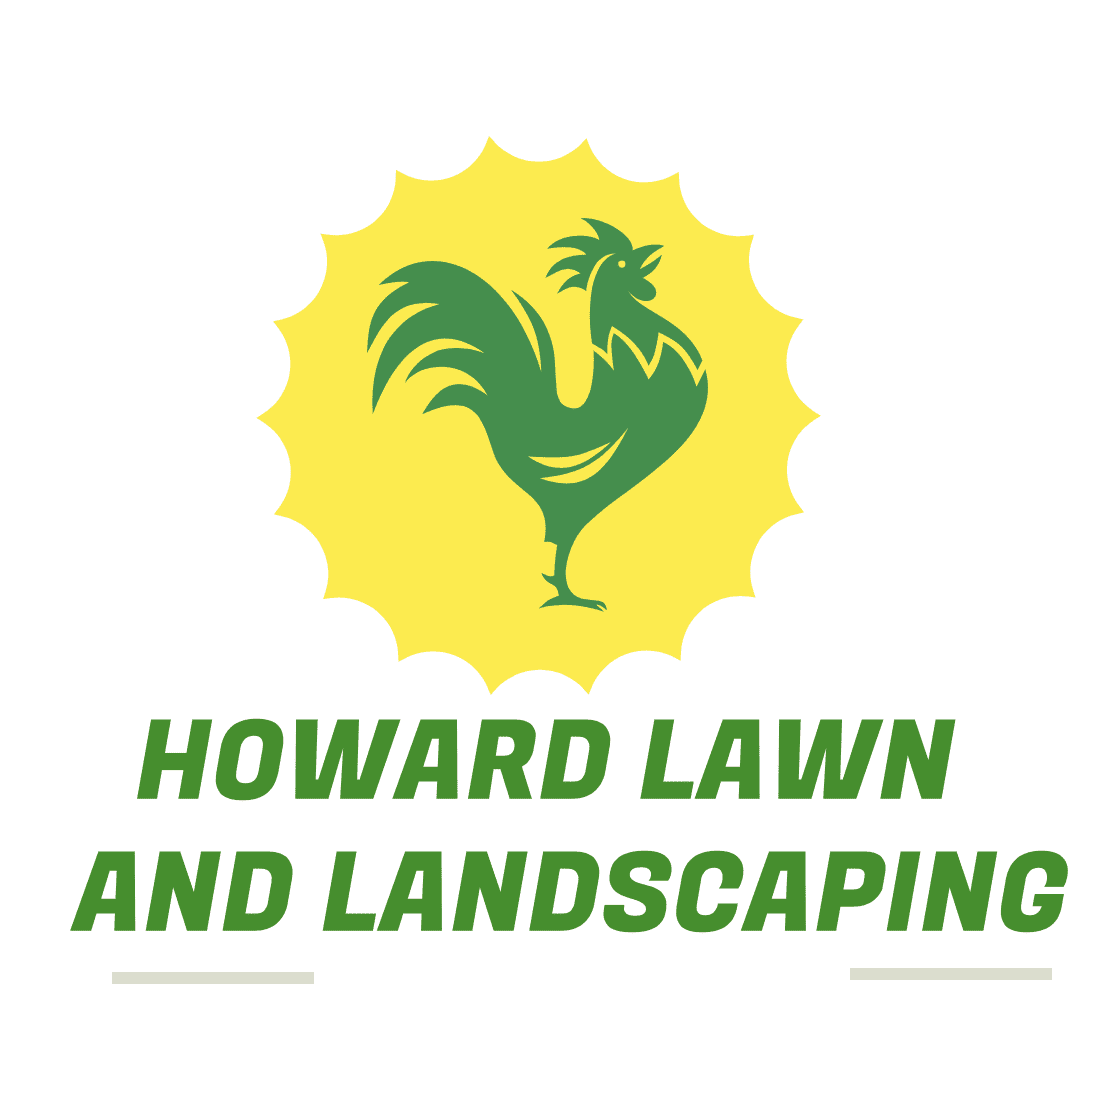 Howard lawn and landscaping service llc curtice ohio for Lawn and garden services